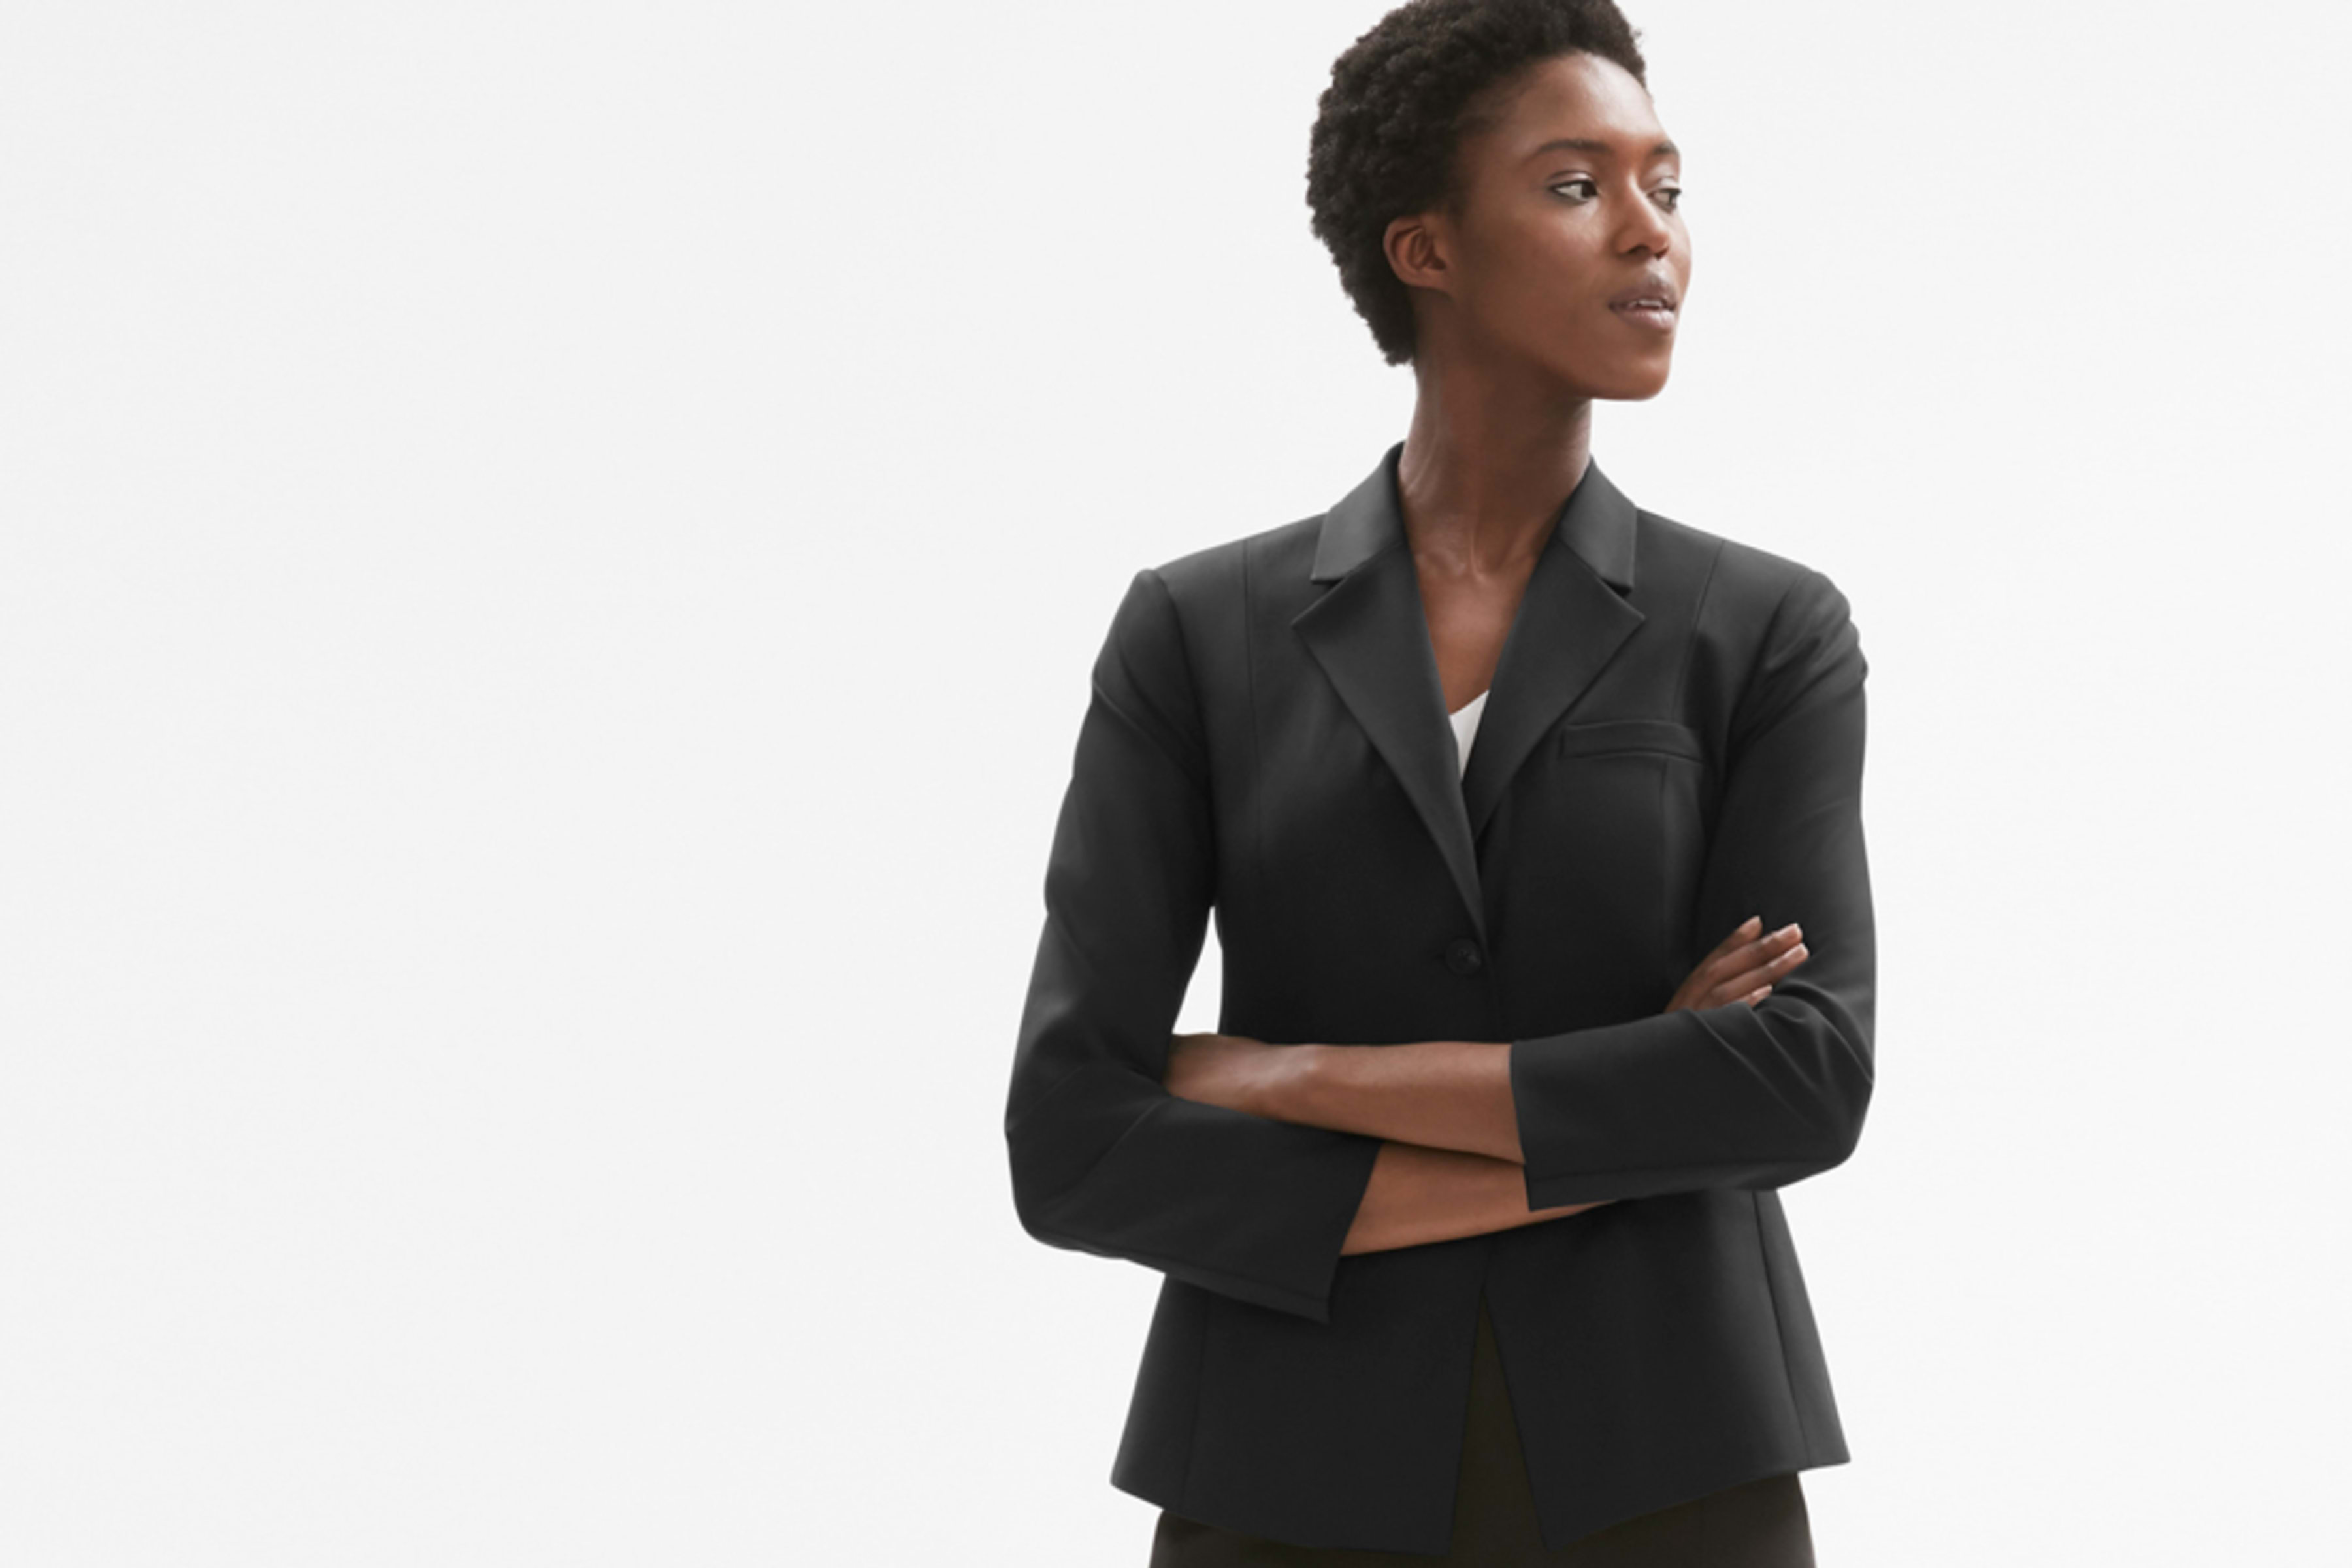 b95acbfc49 Interview Outfits for Lawyers  13 Tips for Nailing It